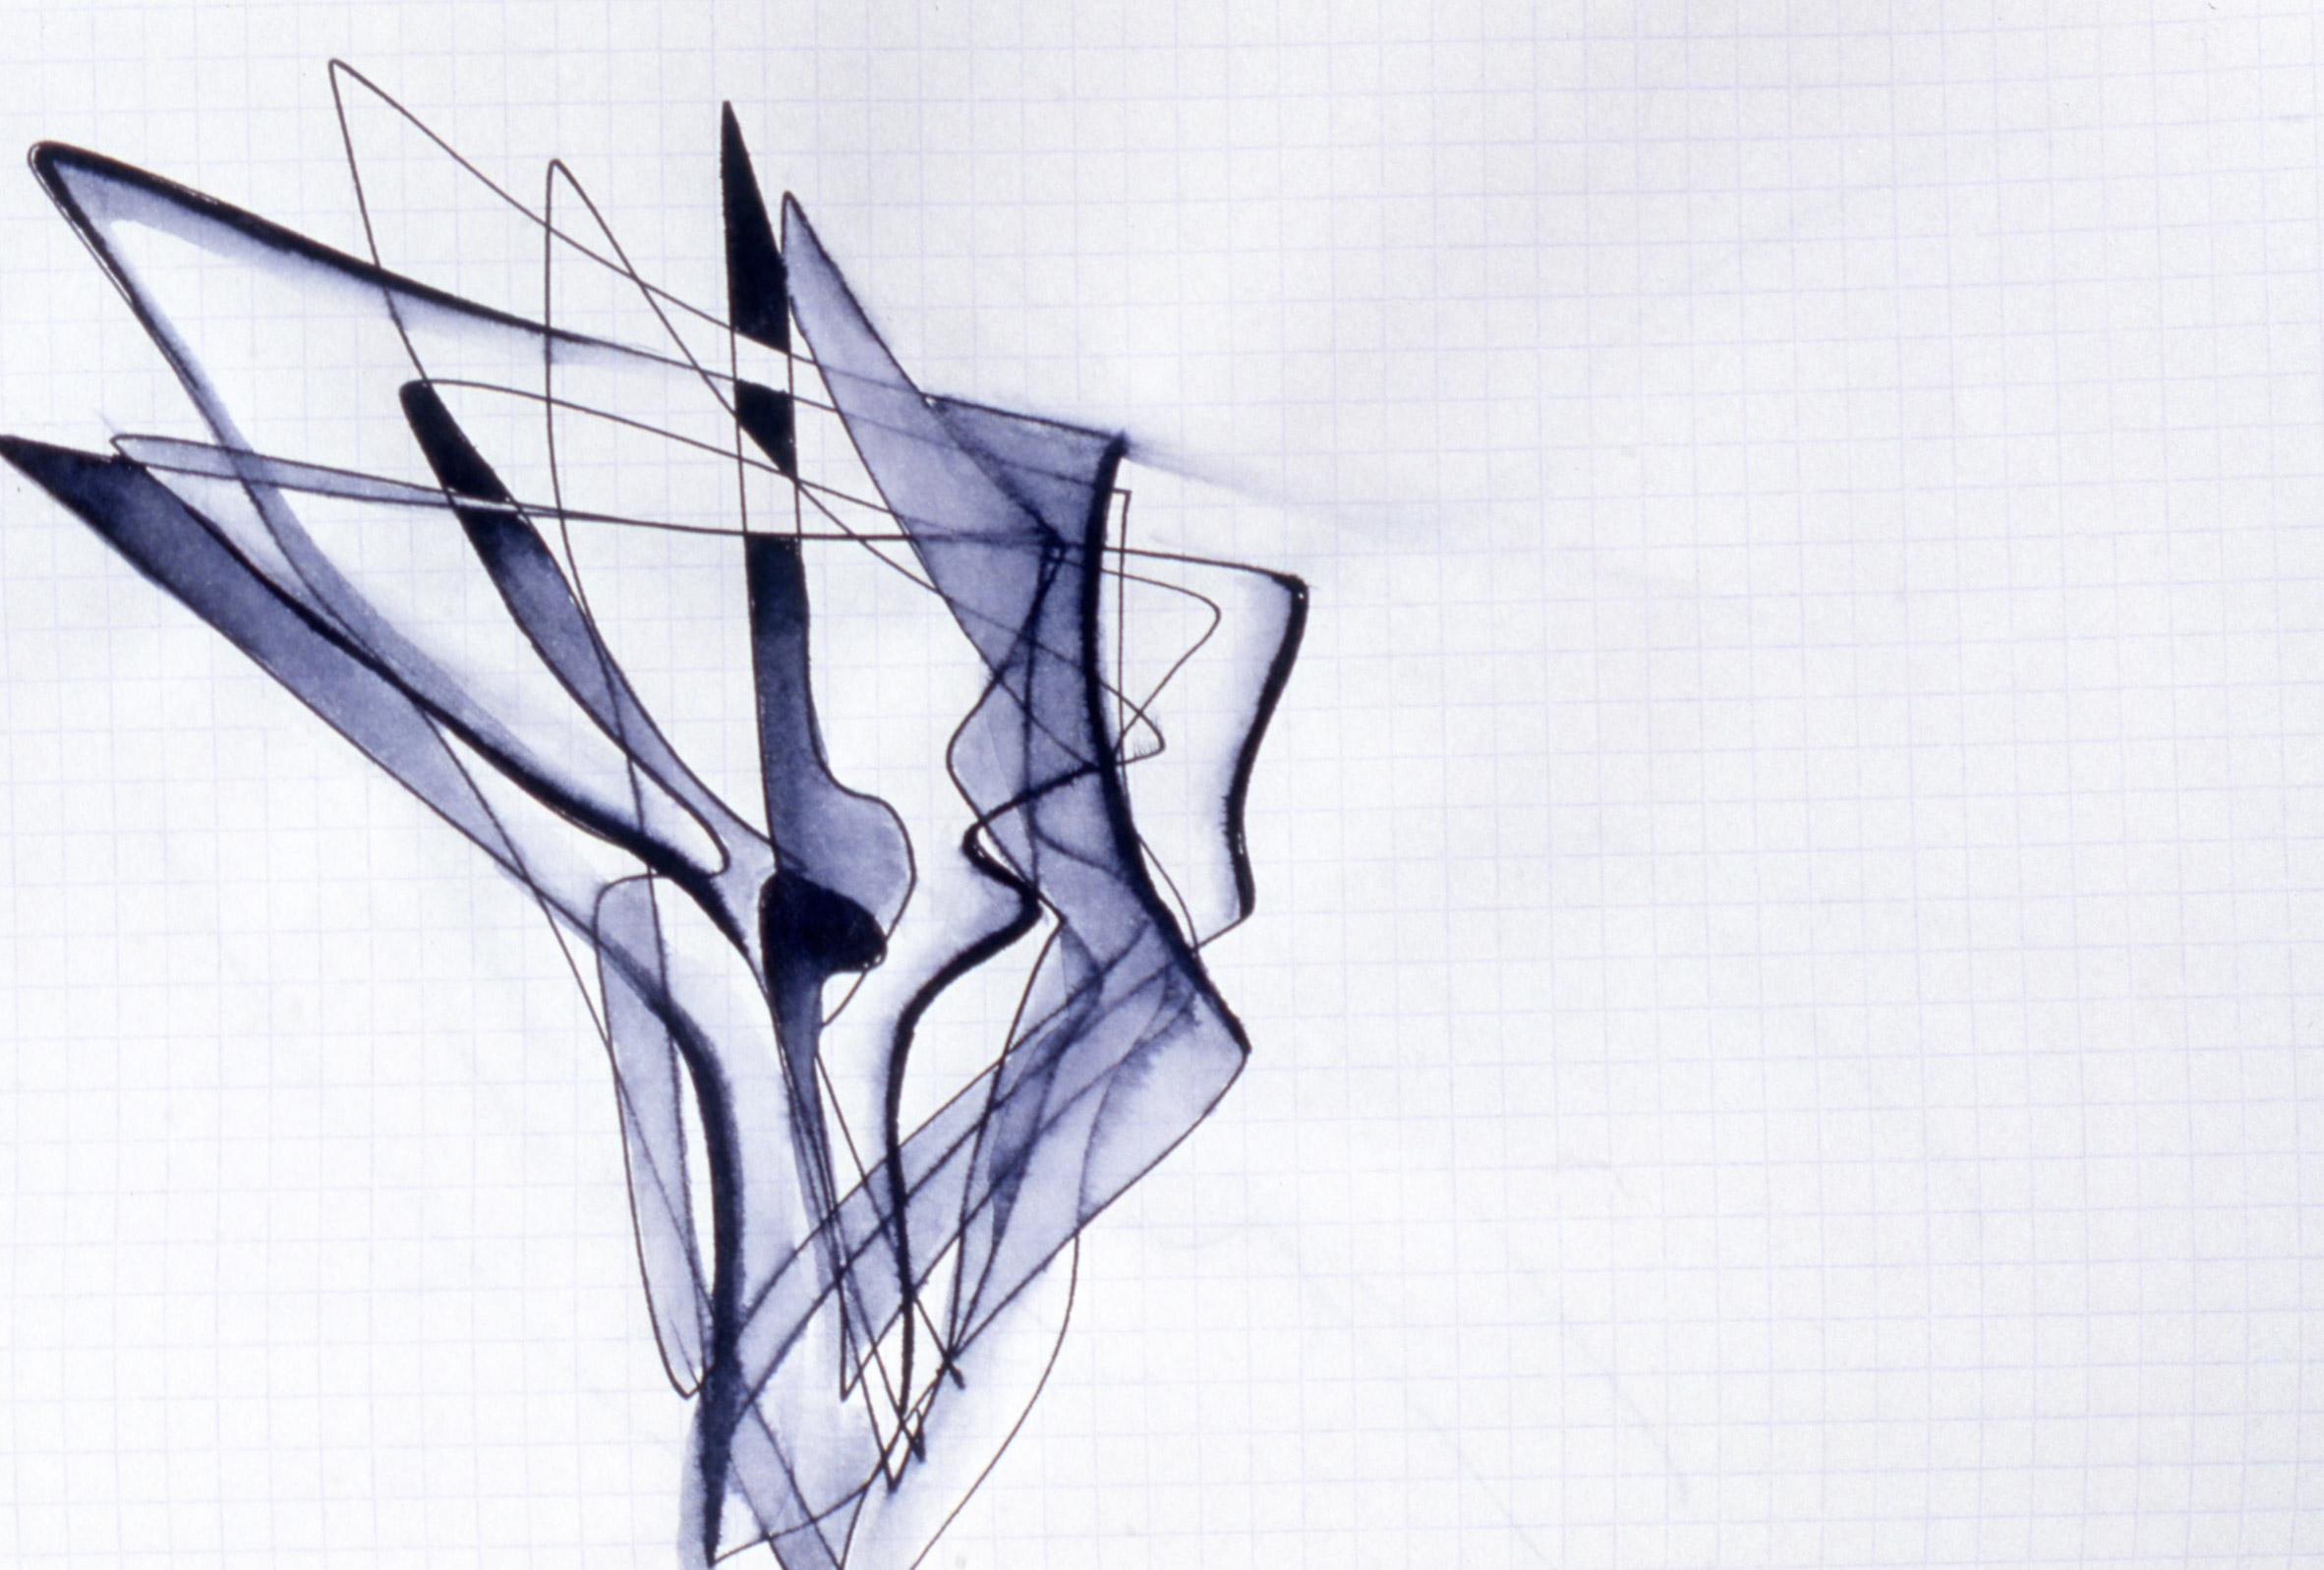 1 Zaha Hadid's early paintings to go on show at Serpentine Sackler Gallery Serpentine Sackler Gallery Zaha Hadid's early paintings at Serpentine Sackler Gallery 1